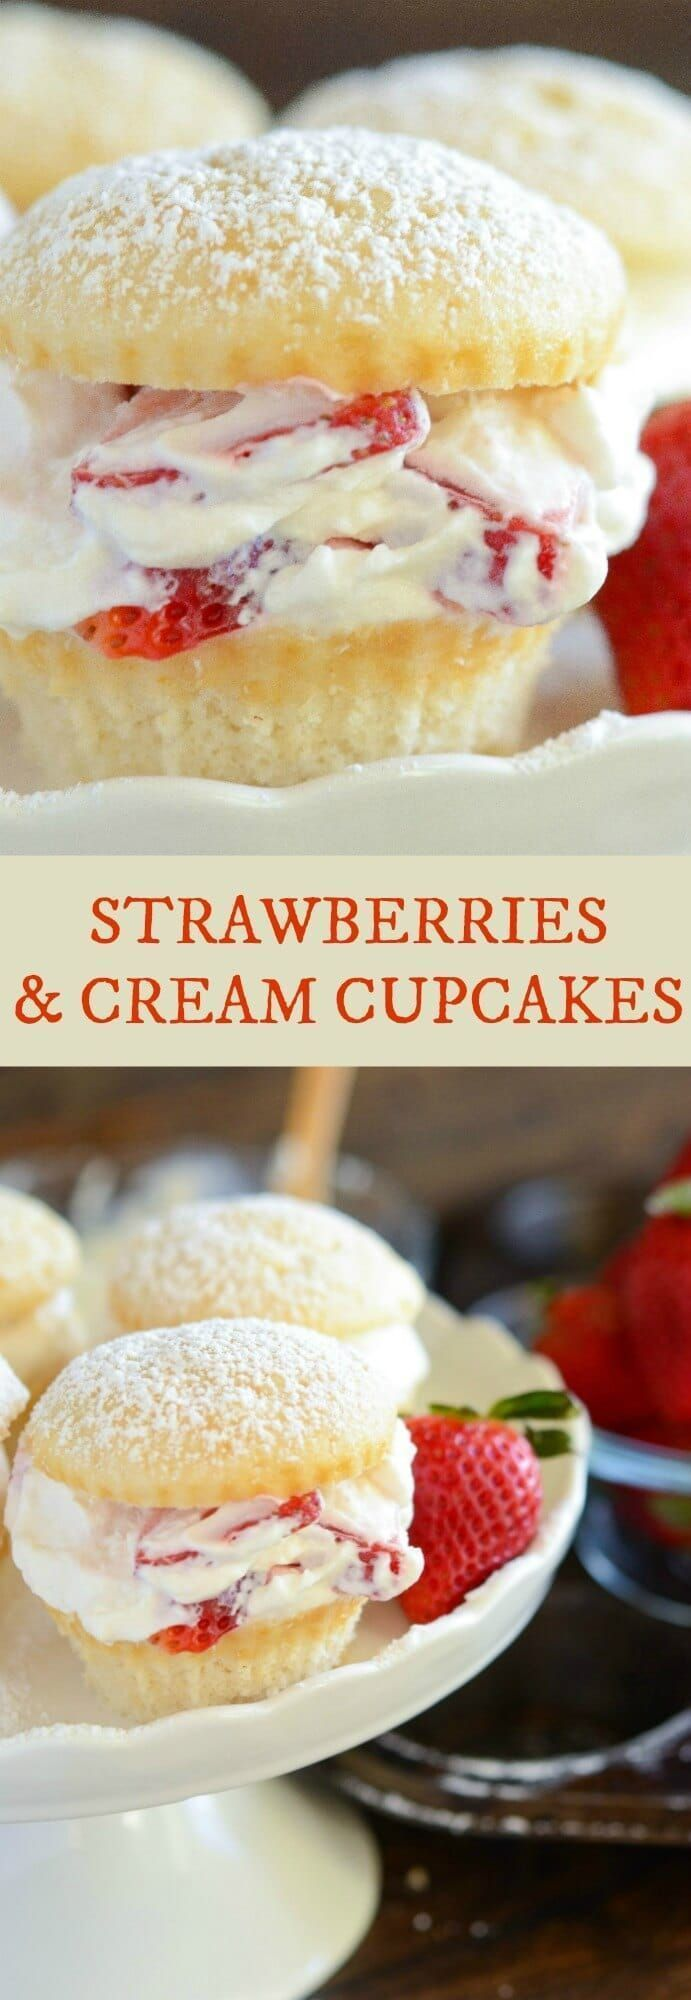 Cream Cupcakes: Light fluffy white cupcakes are filled with juicy fresh strawberries and sweet whipped cream to create a light and bright dessert! Cupcakes: Light fluffy white cupcakes are filled with juicy fresh strawberries and sweet whipped cream to create a light and bright dessert!